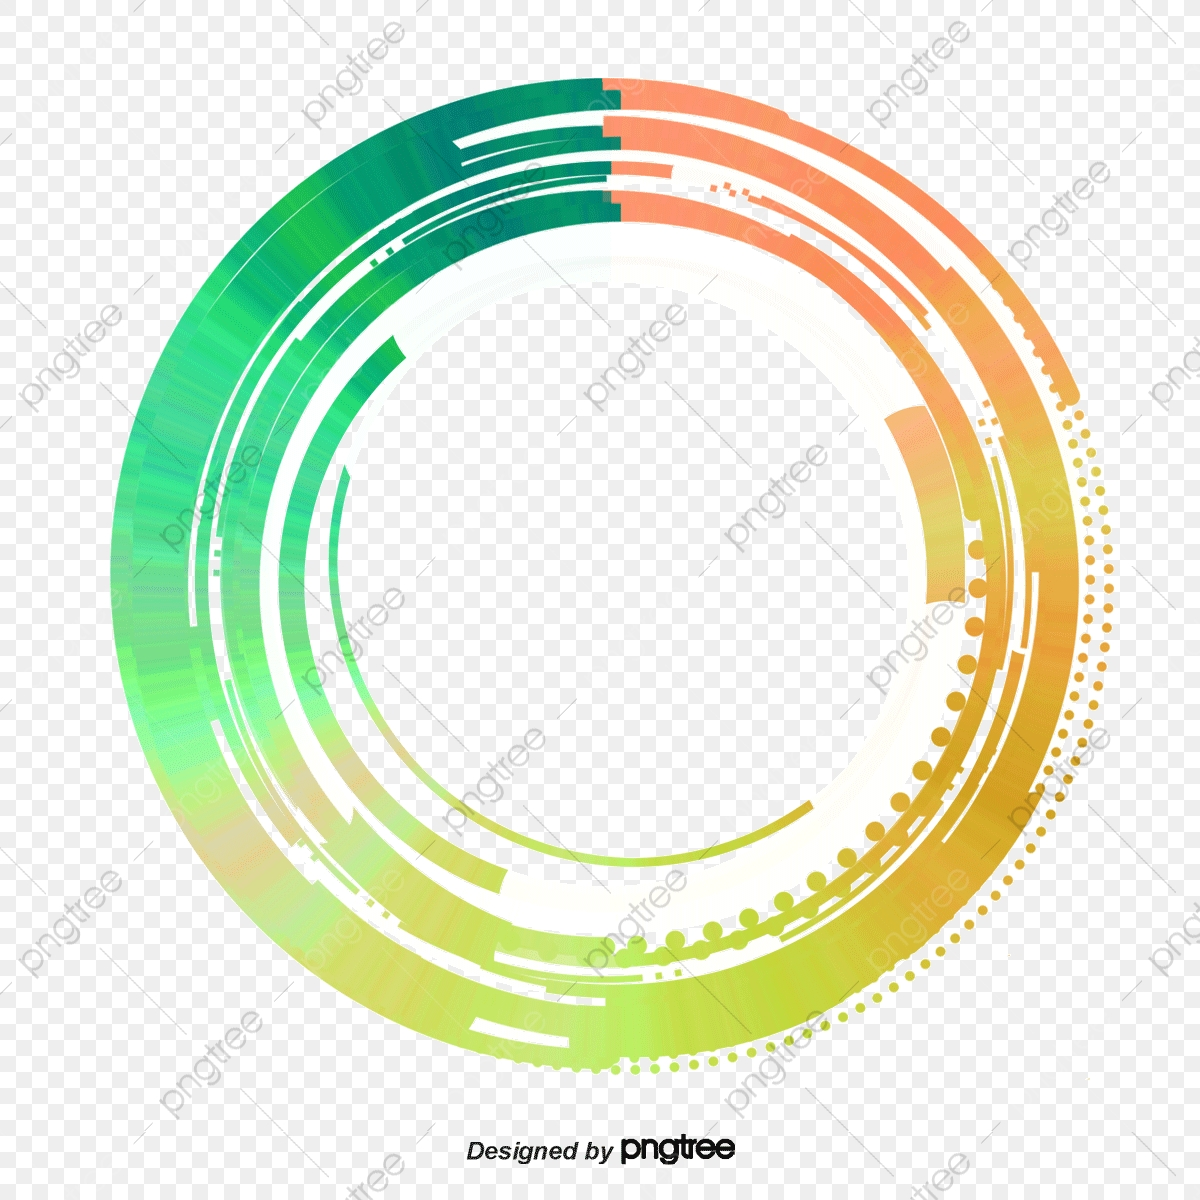 science and technology abstract circle science vector technology vector abstract vector png transparent clipart image and psd file for free download https pngtree com freepng science and technology abstract circle 2315827 html